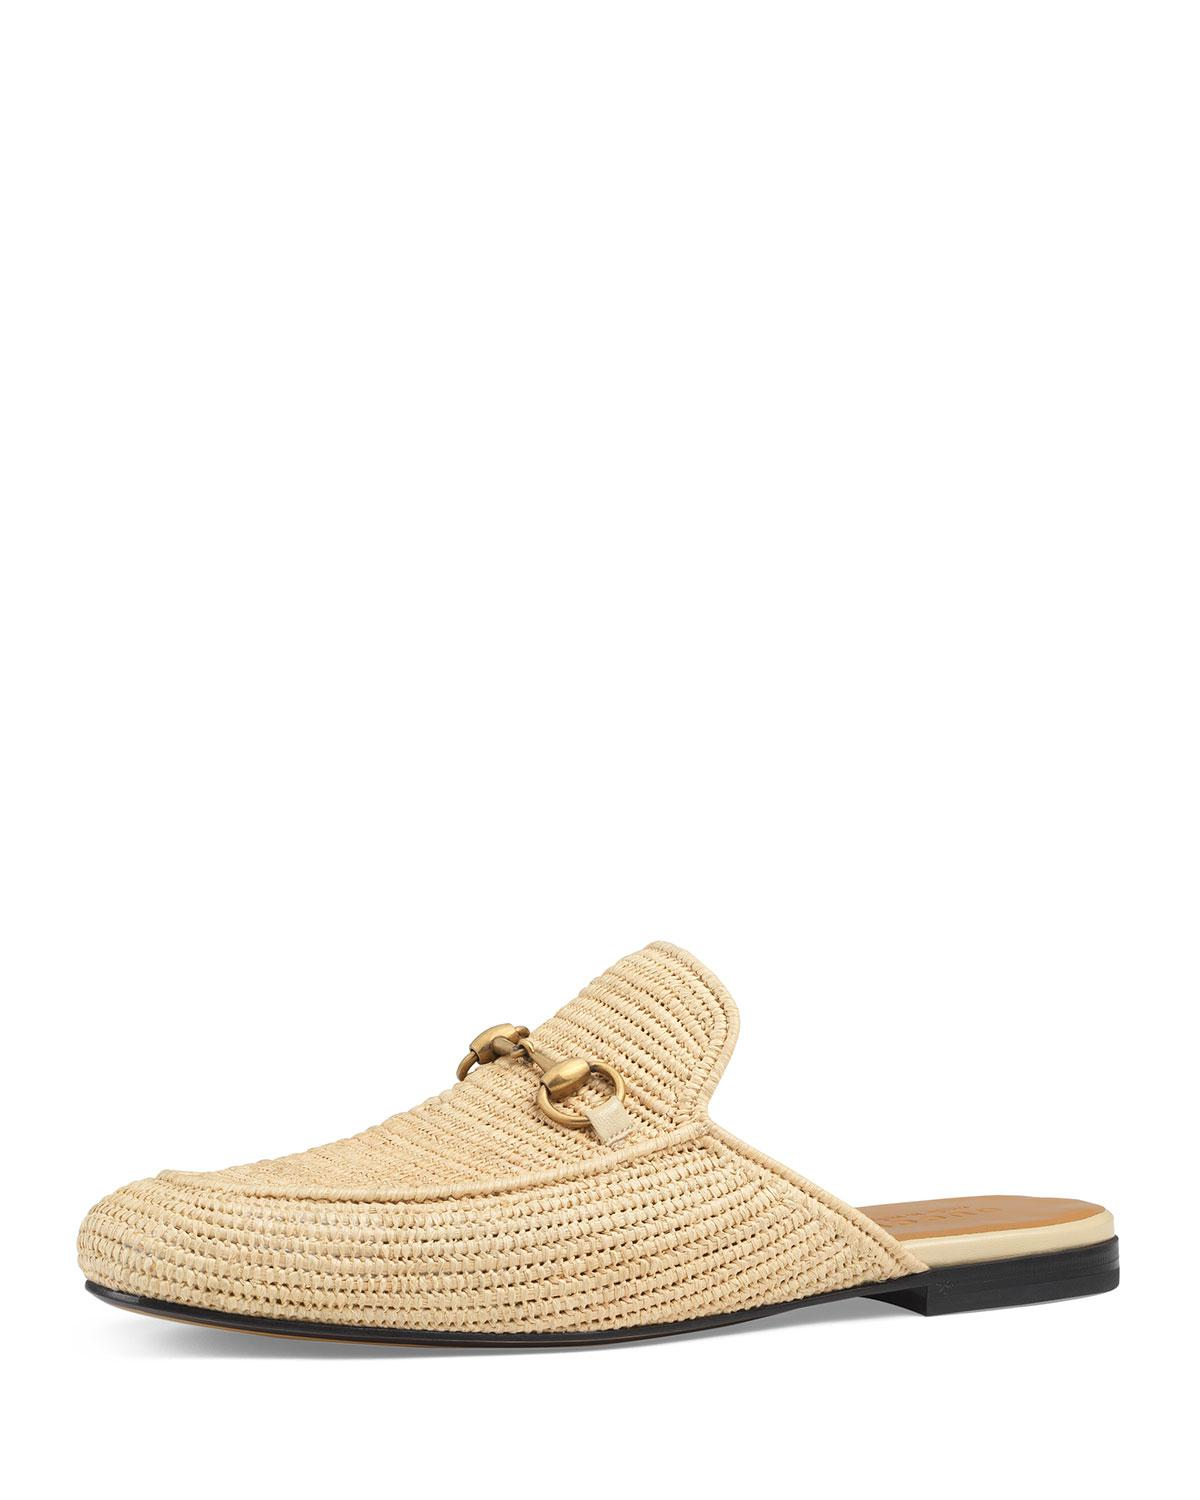 e856bccfcac Gucci Straw Princetown Slipper in Natural for Men - Save 60% - Lyst